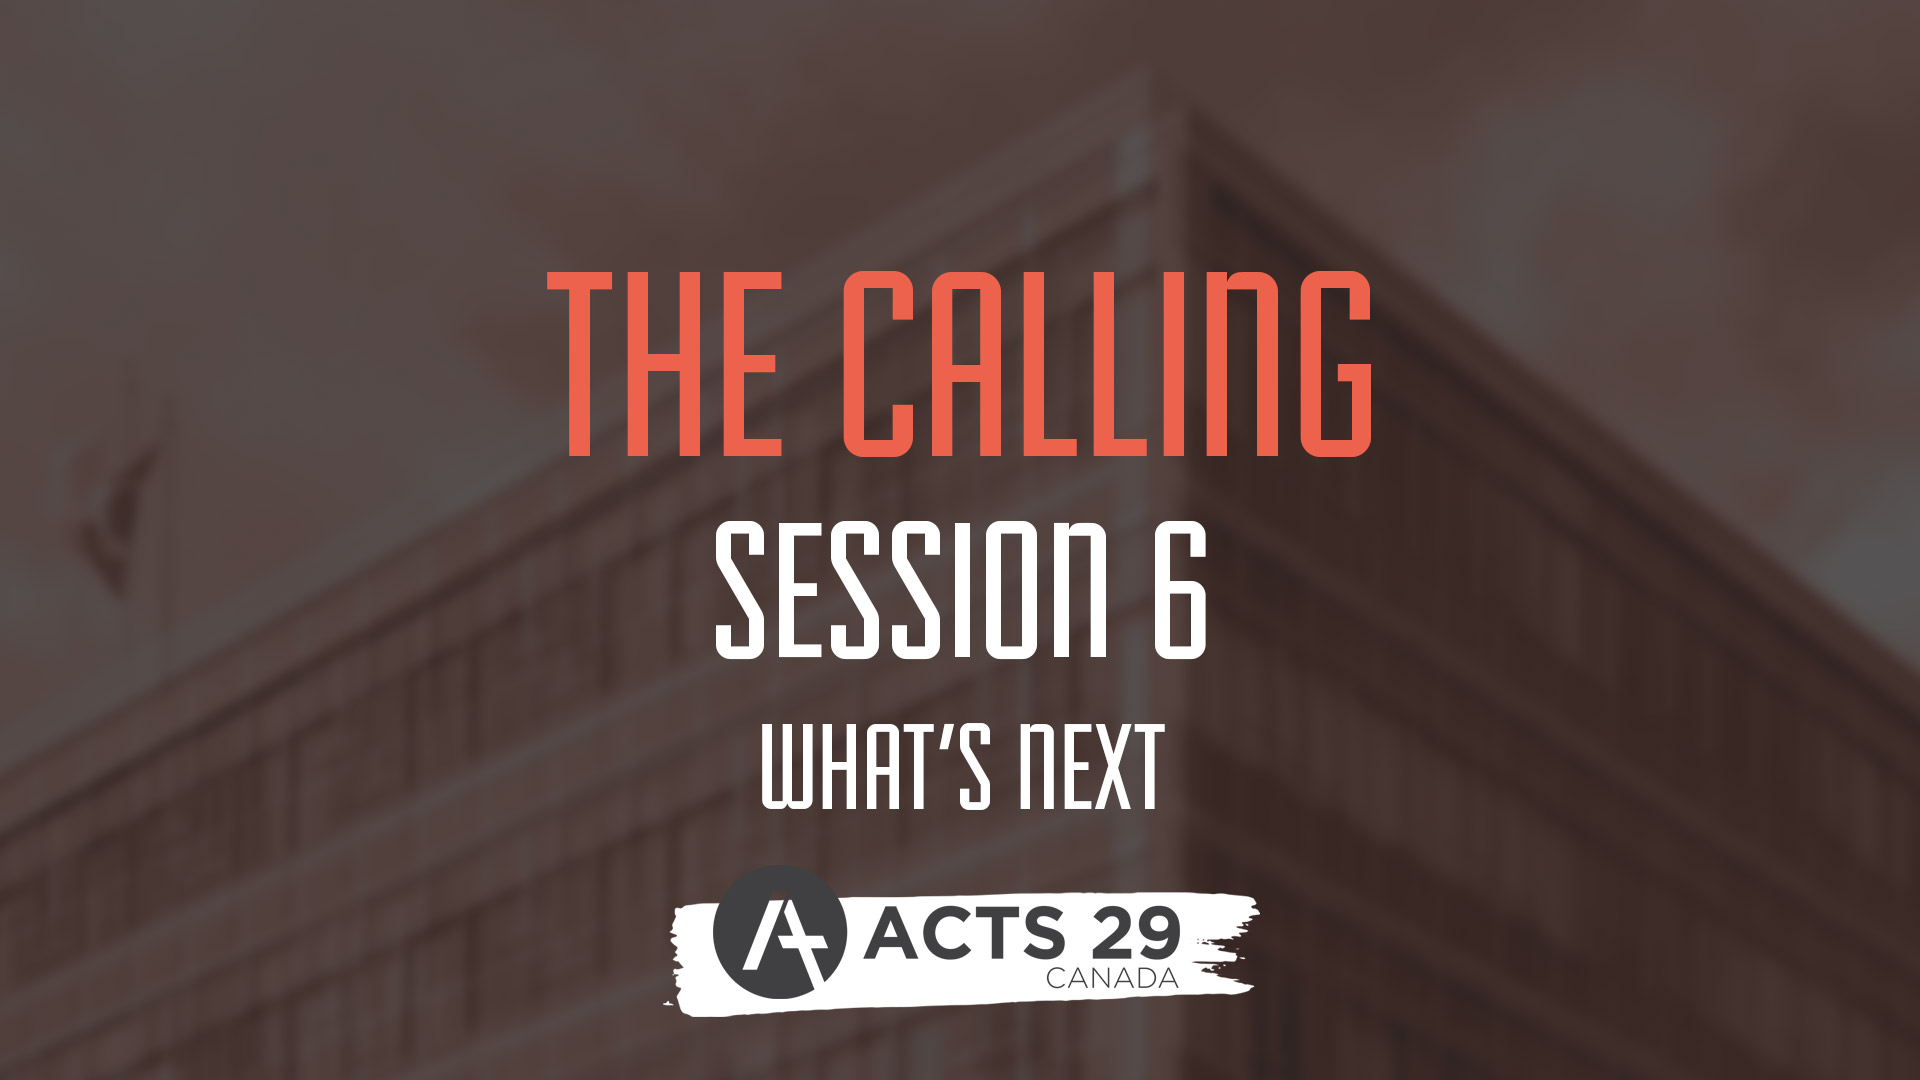 The Calling - Session 6